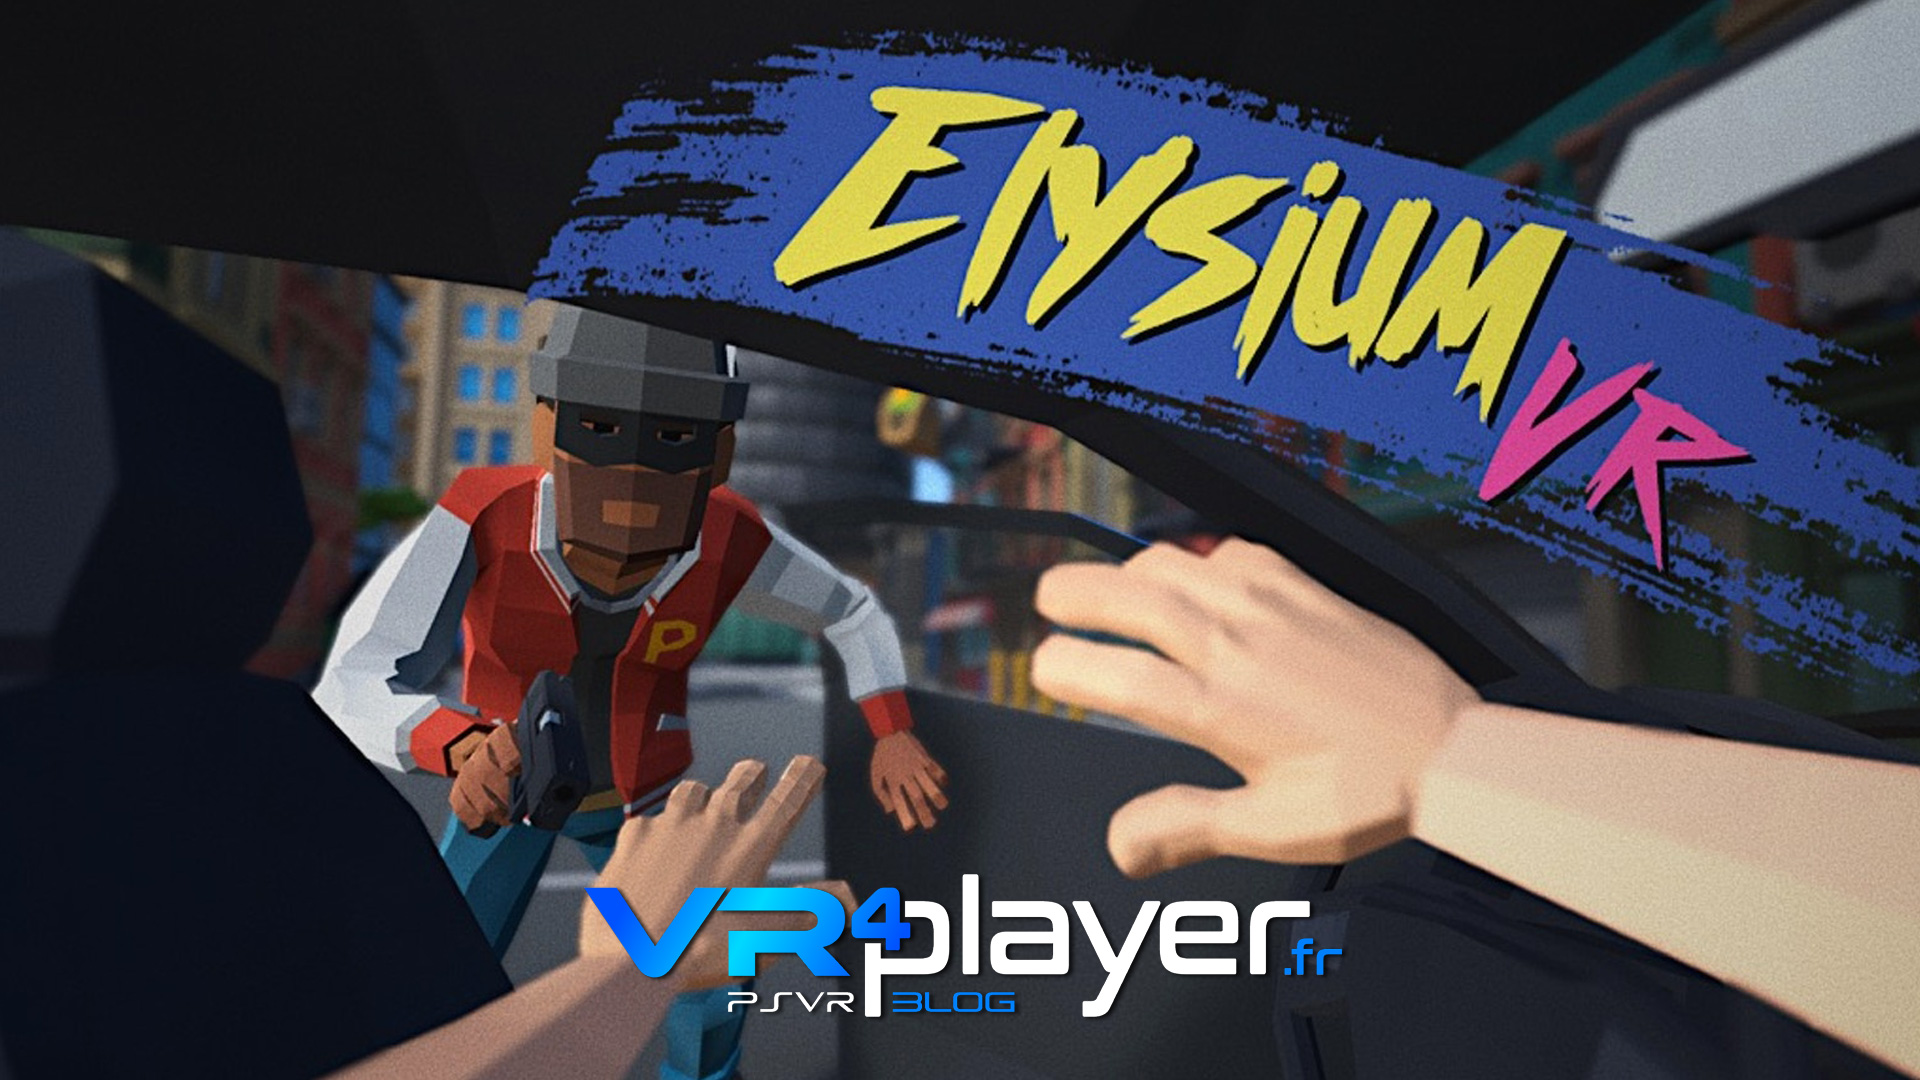 Elysium VR, PlayStation VR, PSVR VR4player.fr